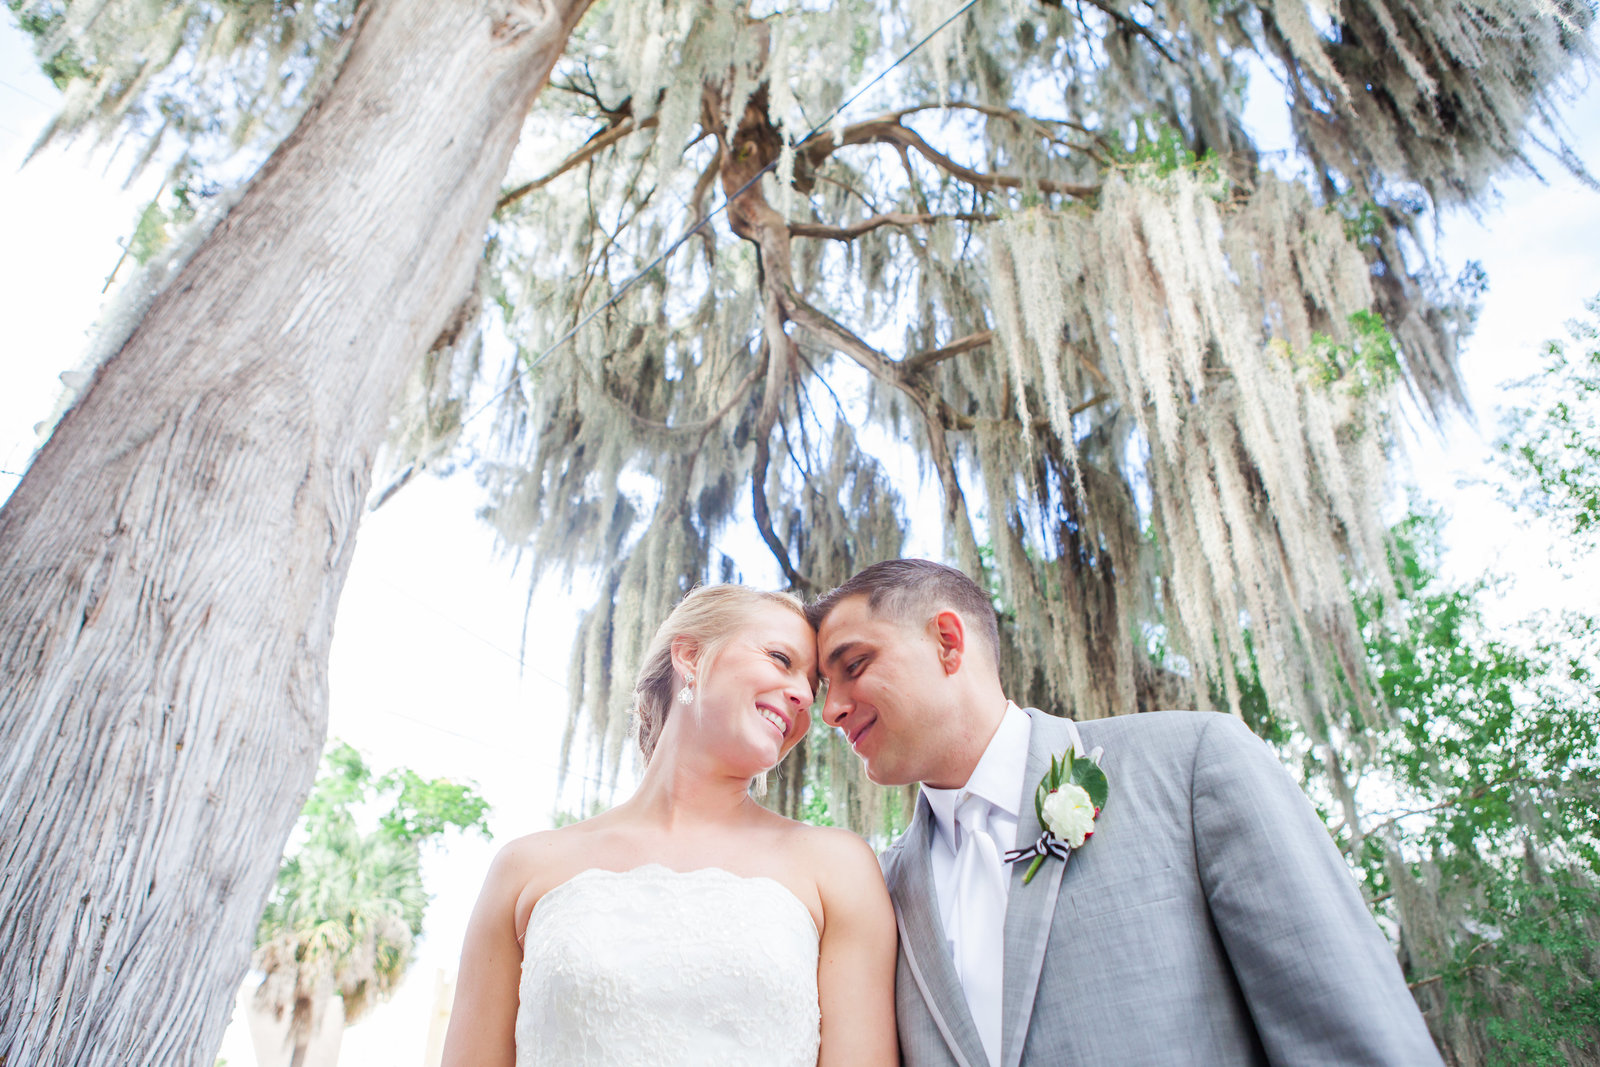 ashevilledestinationweddingphotographer_Biltmore_lifestyle_BrenPhotography_281